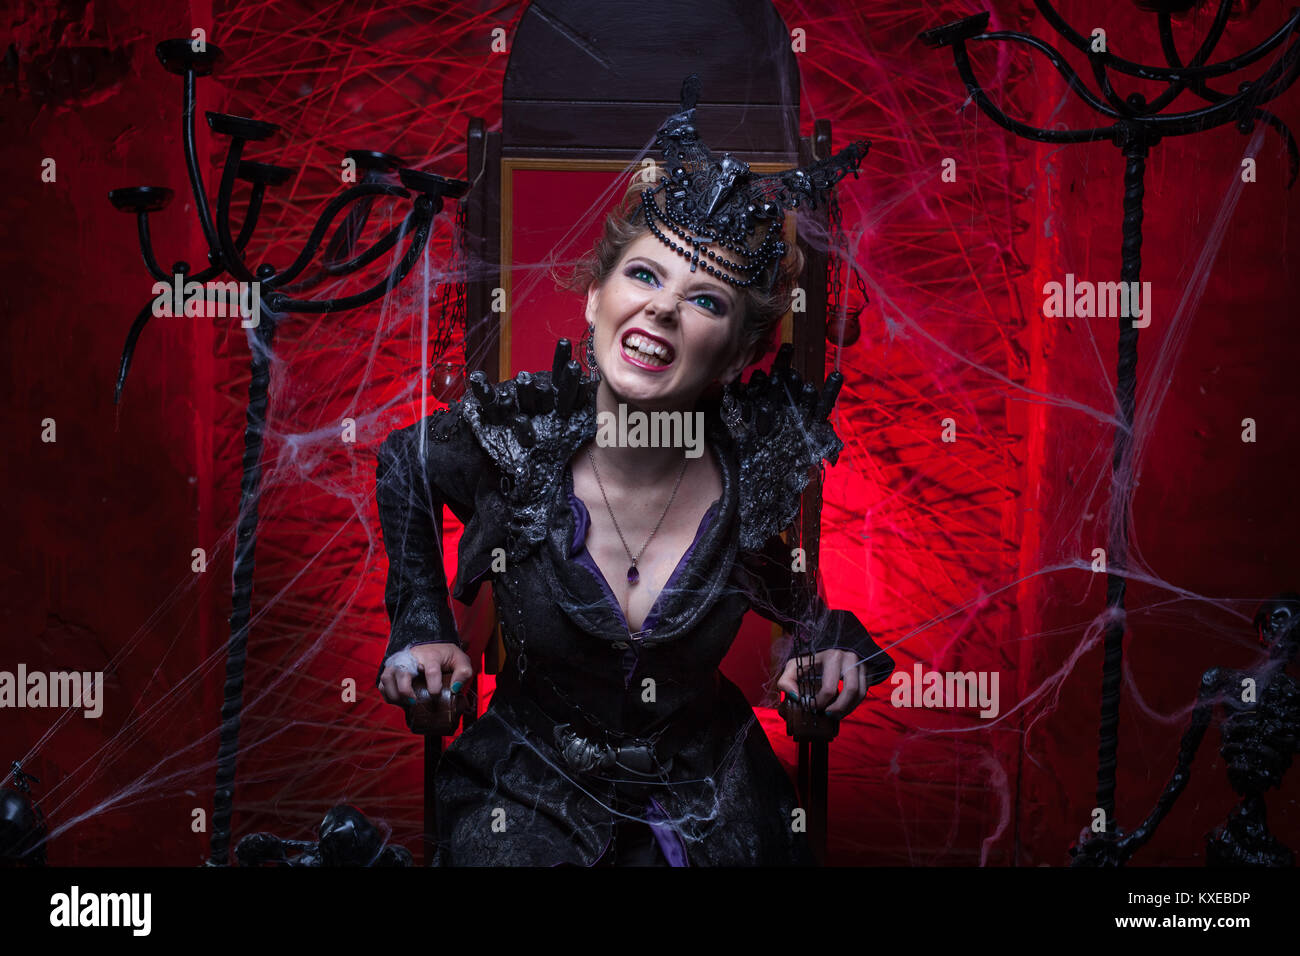 Woman in black sits on a throne in a red room and growls. - Stock Image